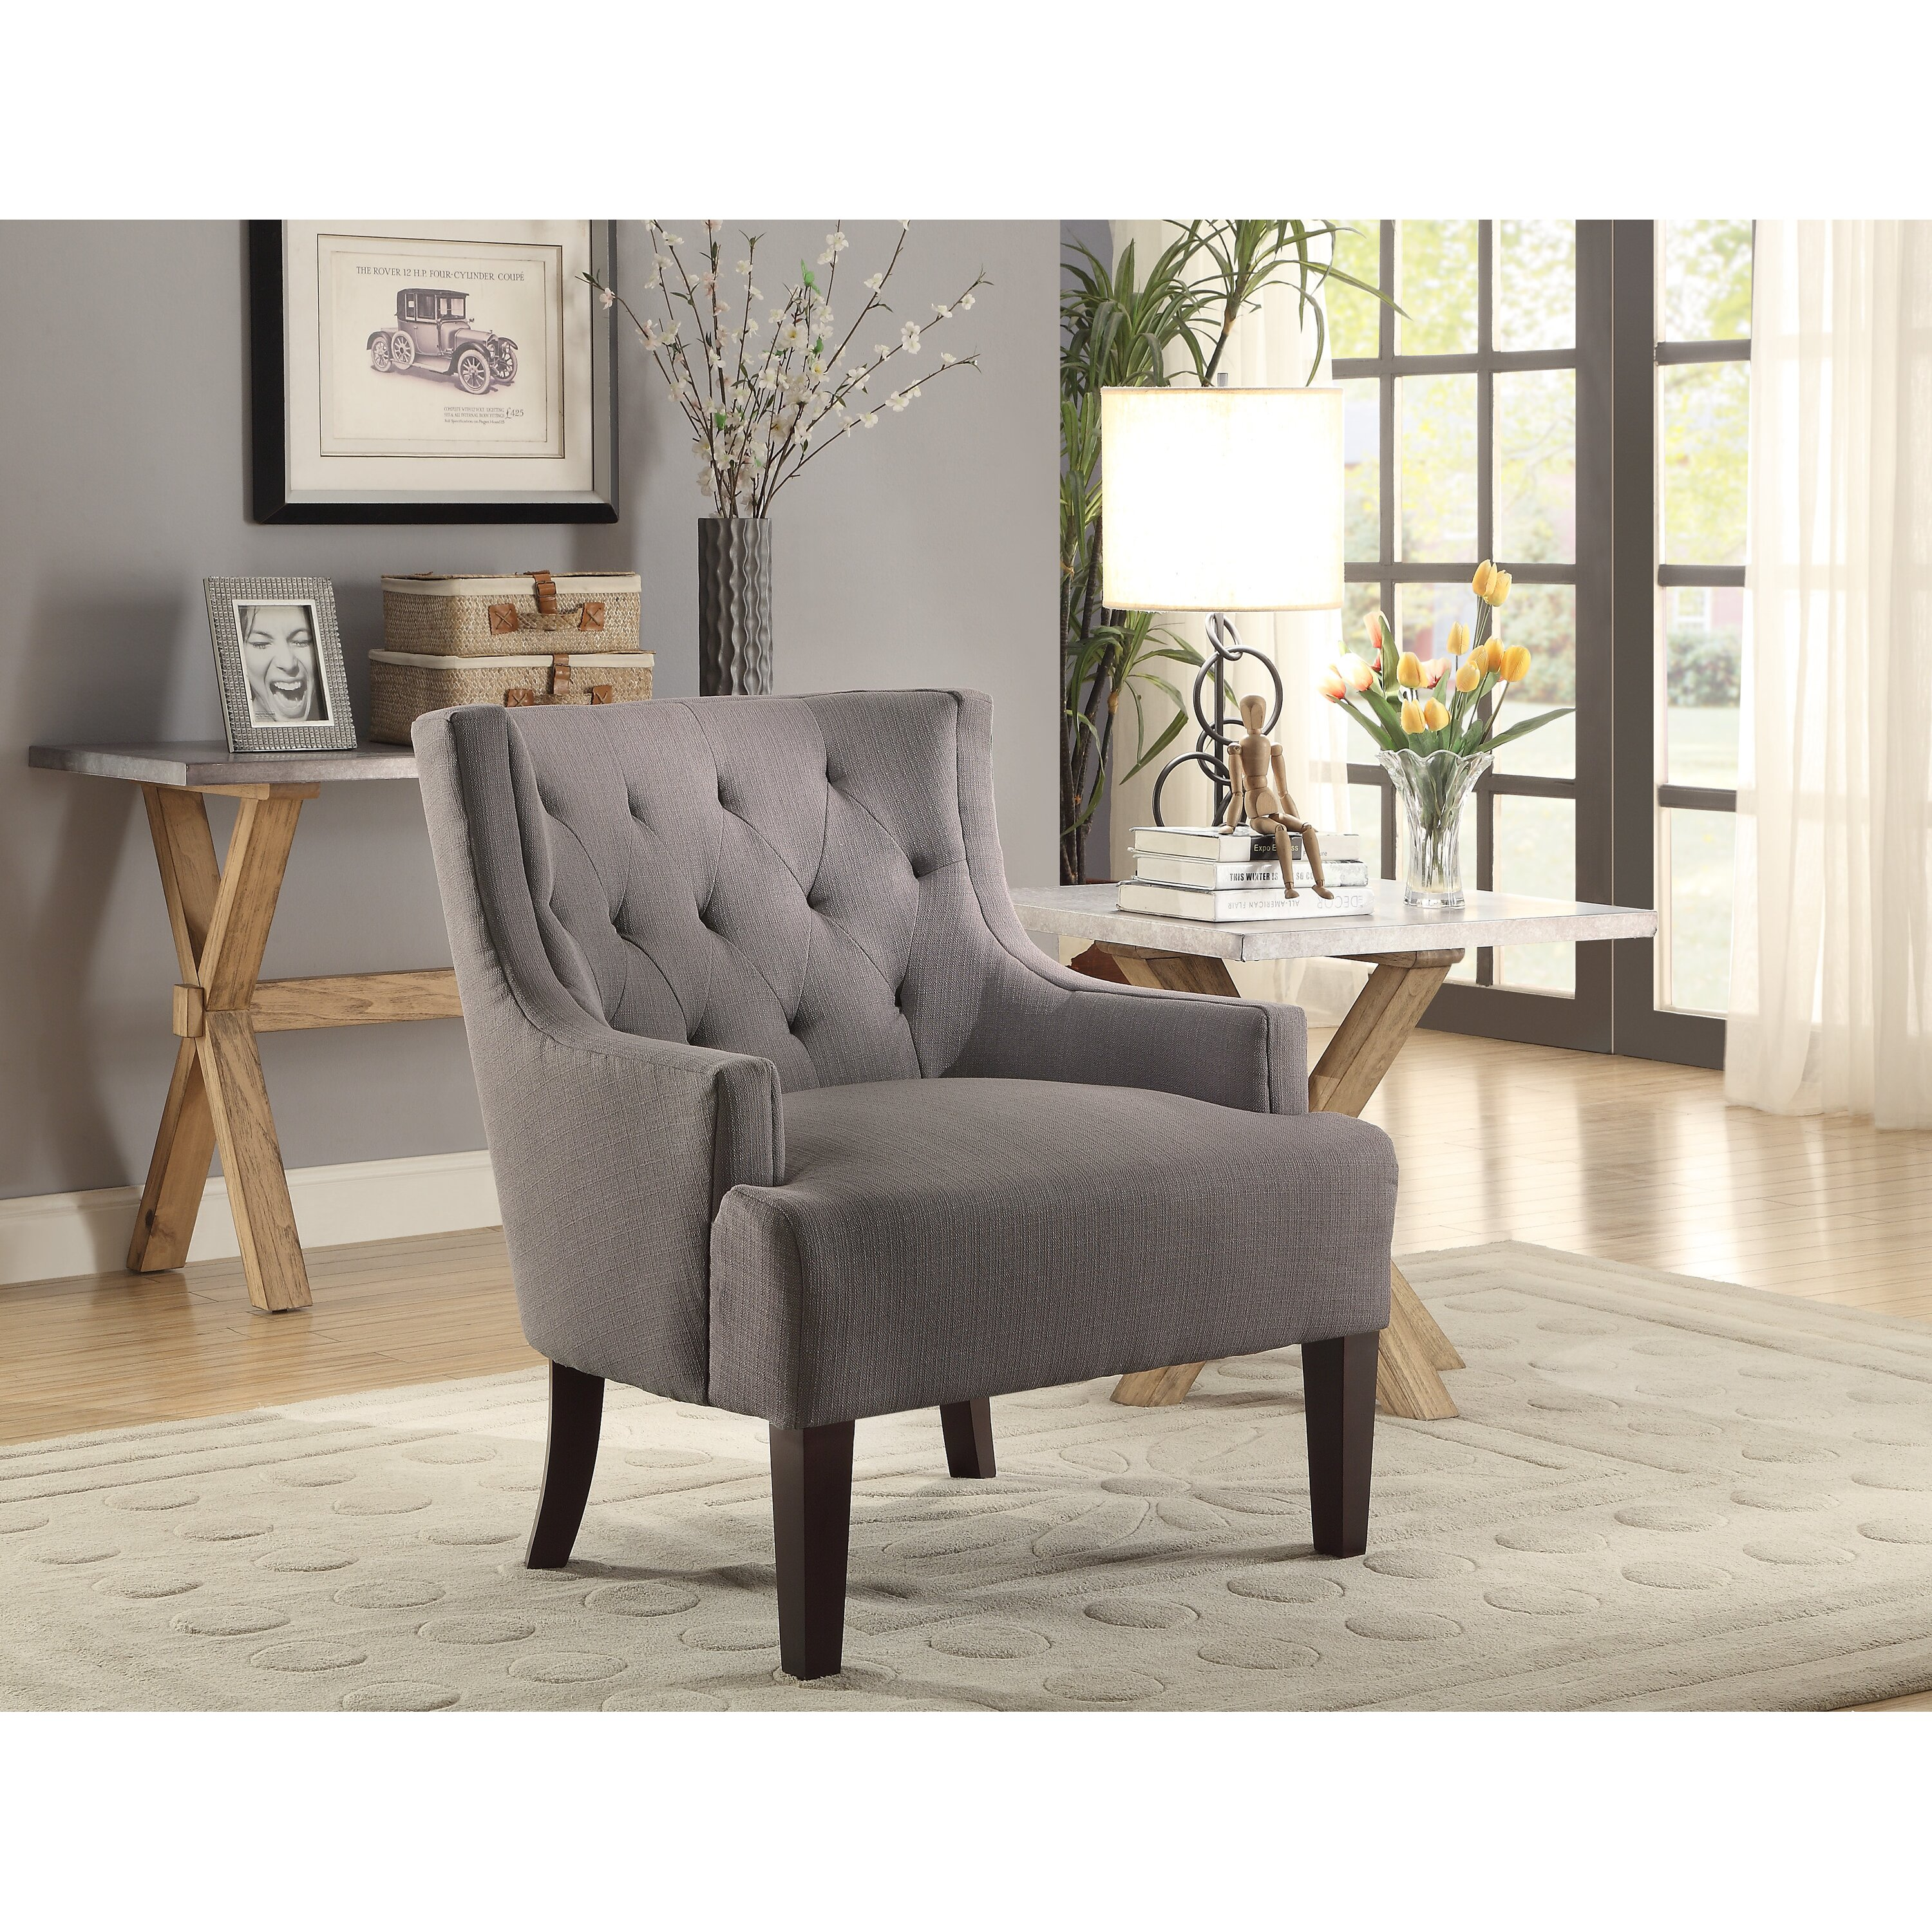 Tufted Living Room Chair Tufted Accent Chairs Youll Love Wayfair